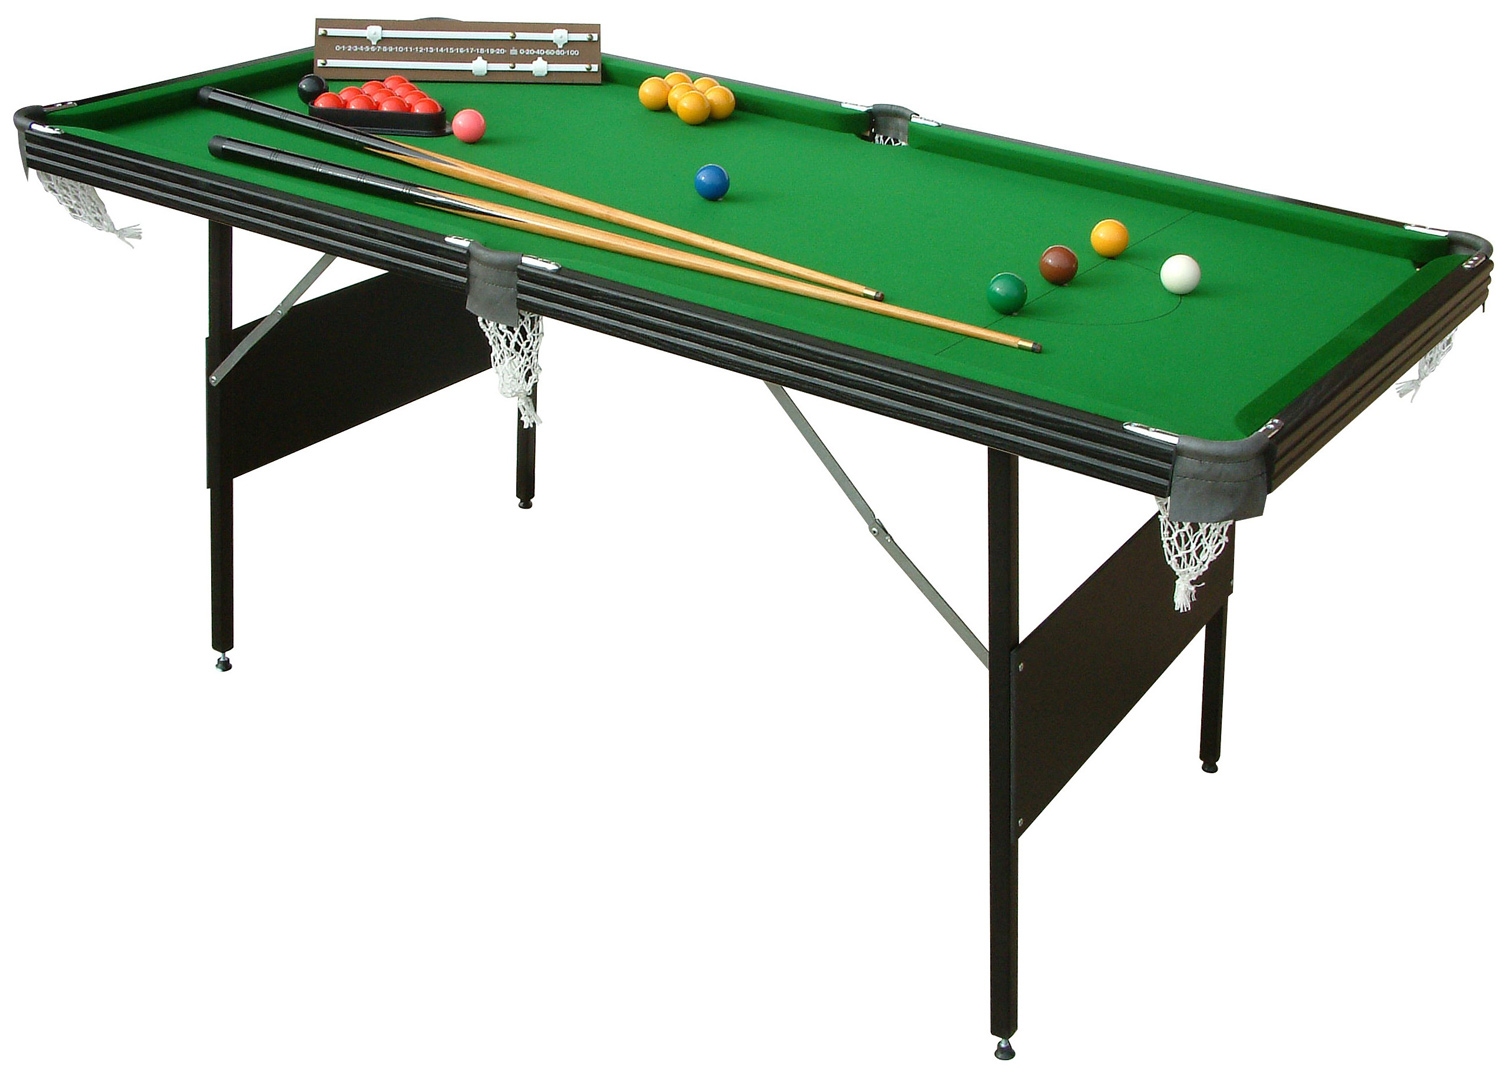 Crucible 6 foot 2 in 1 folding snooker pool table for 10 games in 1 table